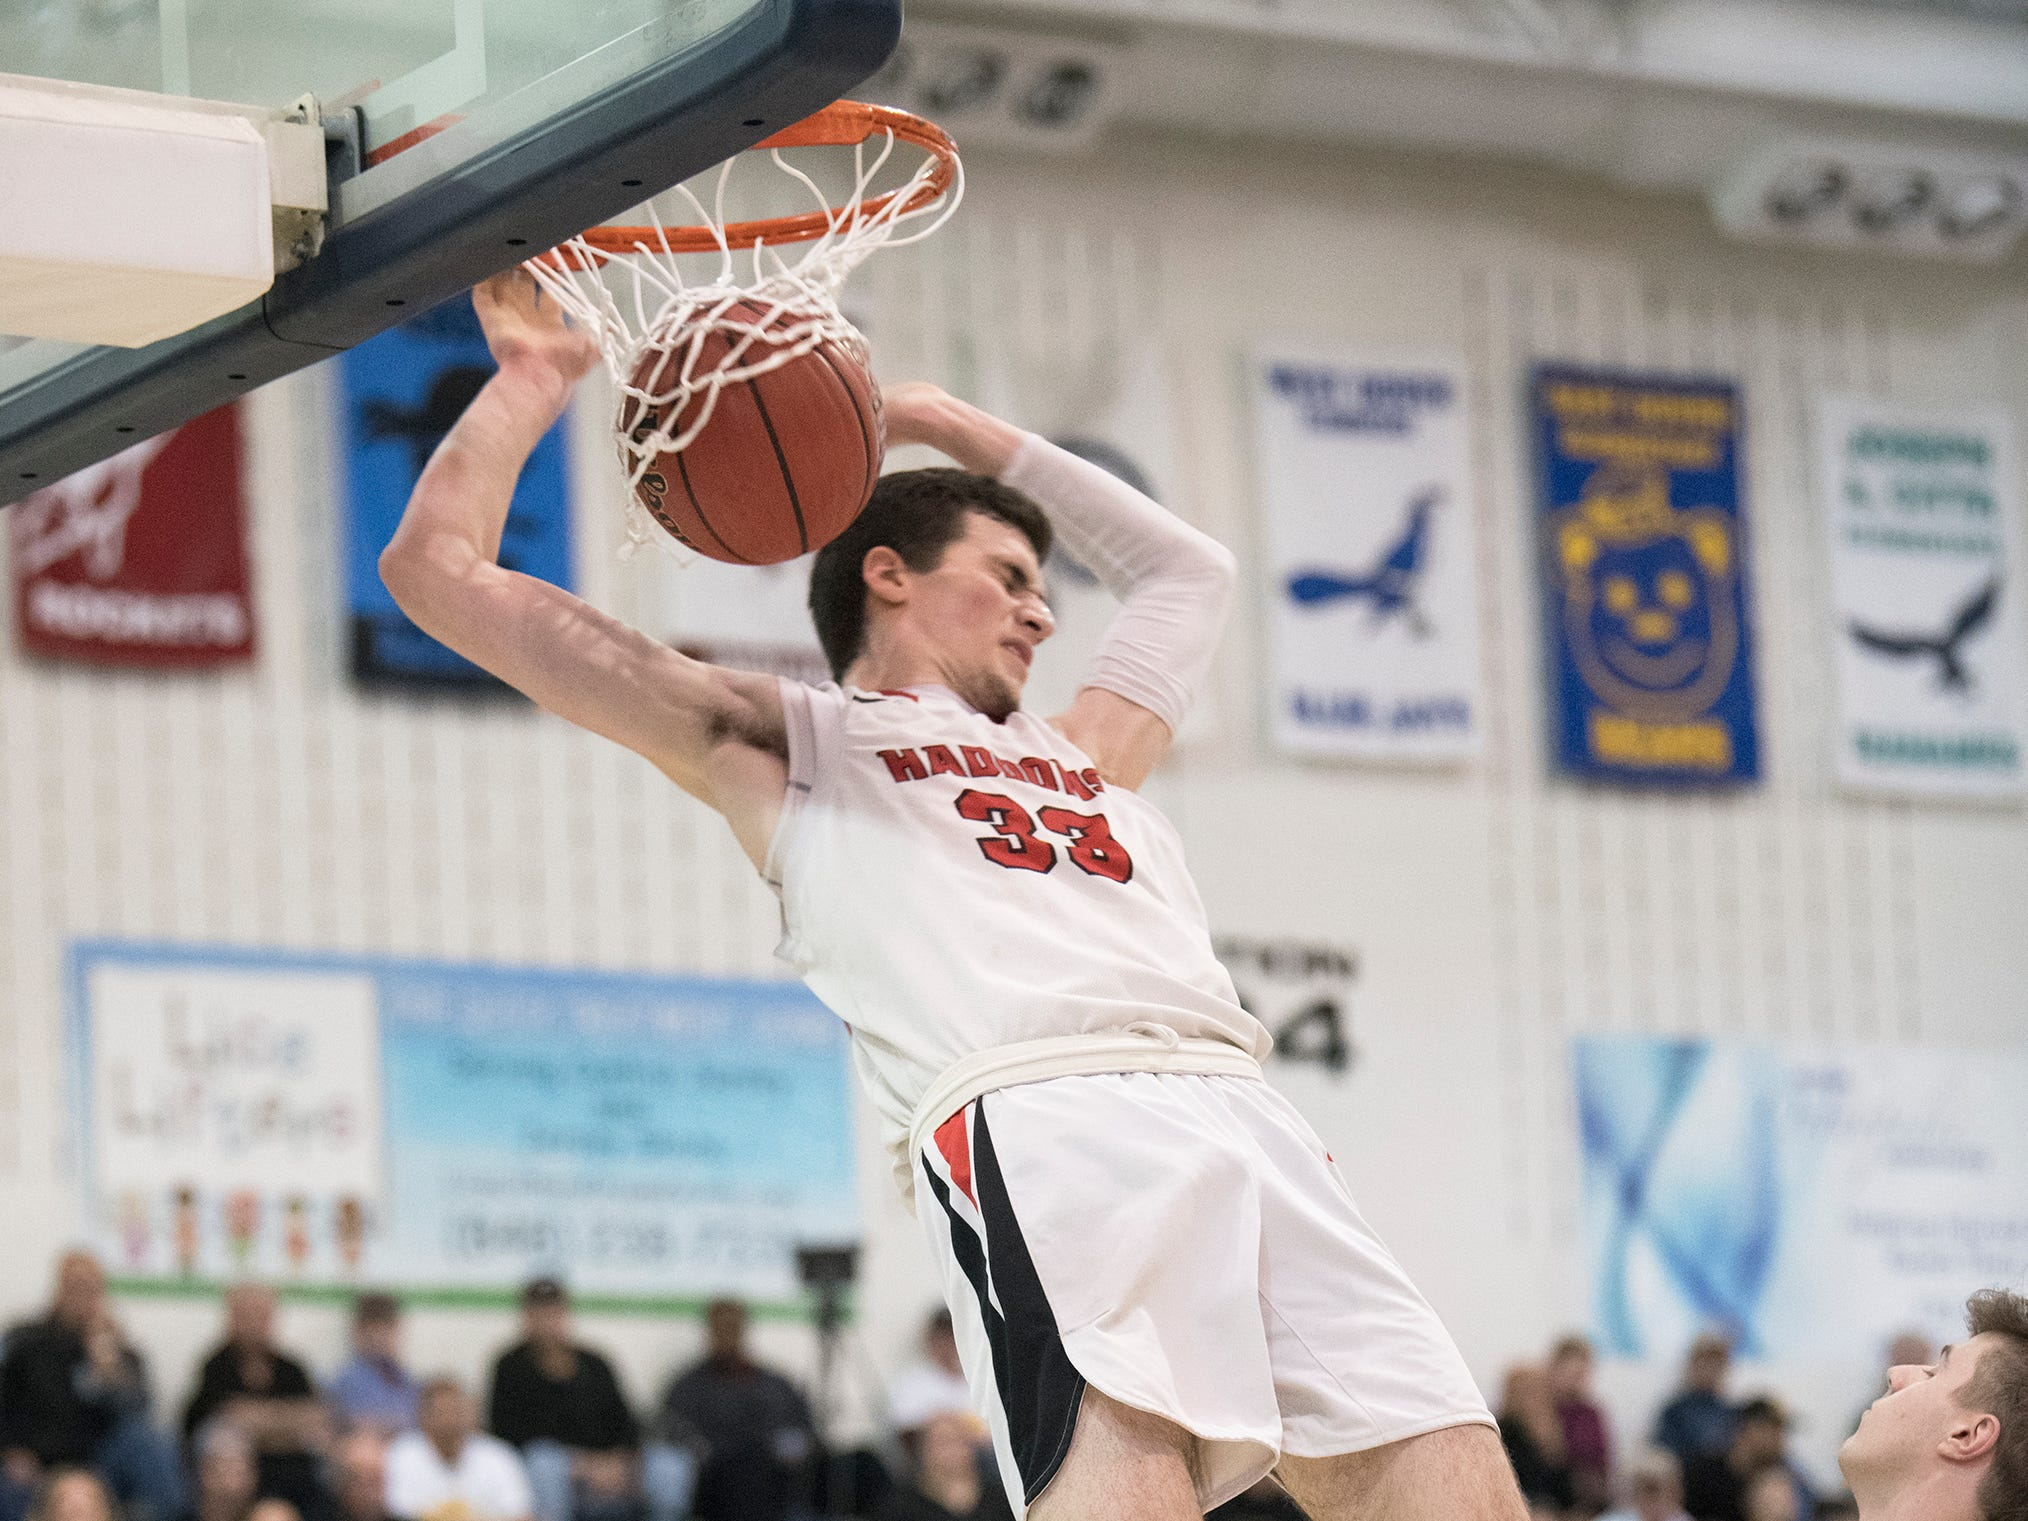 Haddonfield's Dan Fleming dunks the ball during the boys basketball Tournament of Champions quarterfinal game between Haddonfield and Moorestown, played at Toms River North High School on Wednesday, March 13, 2019.    Moorestown defeated Haddonfield, 60-59.